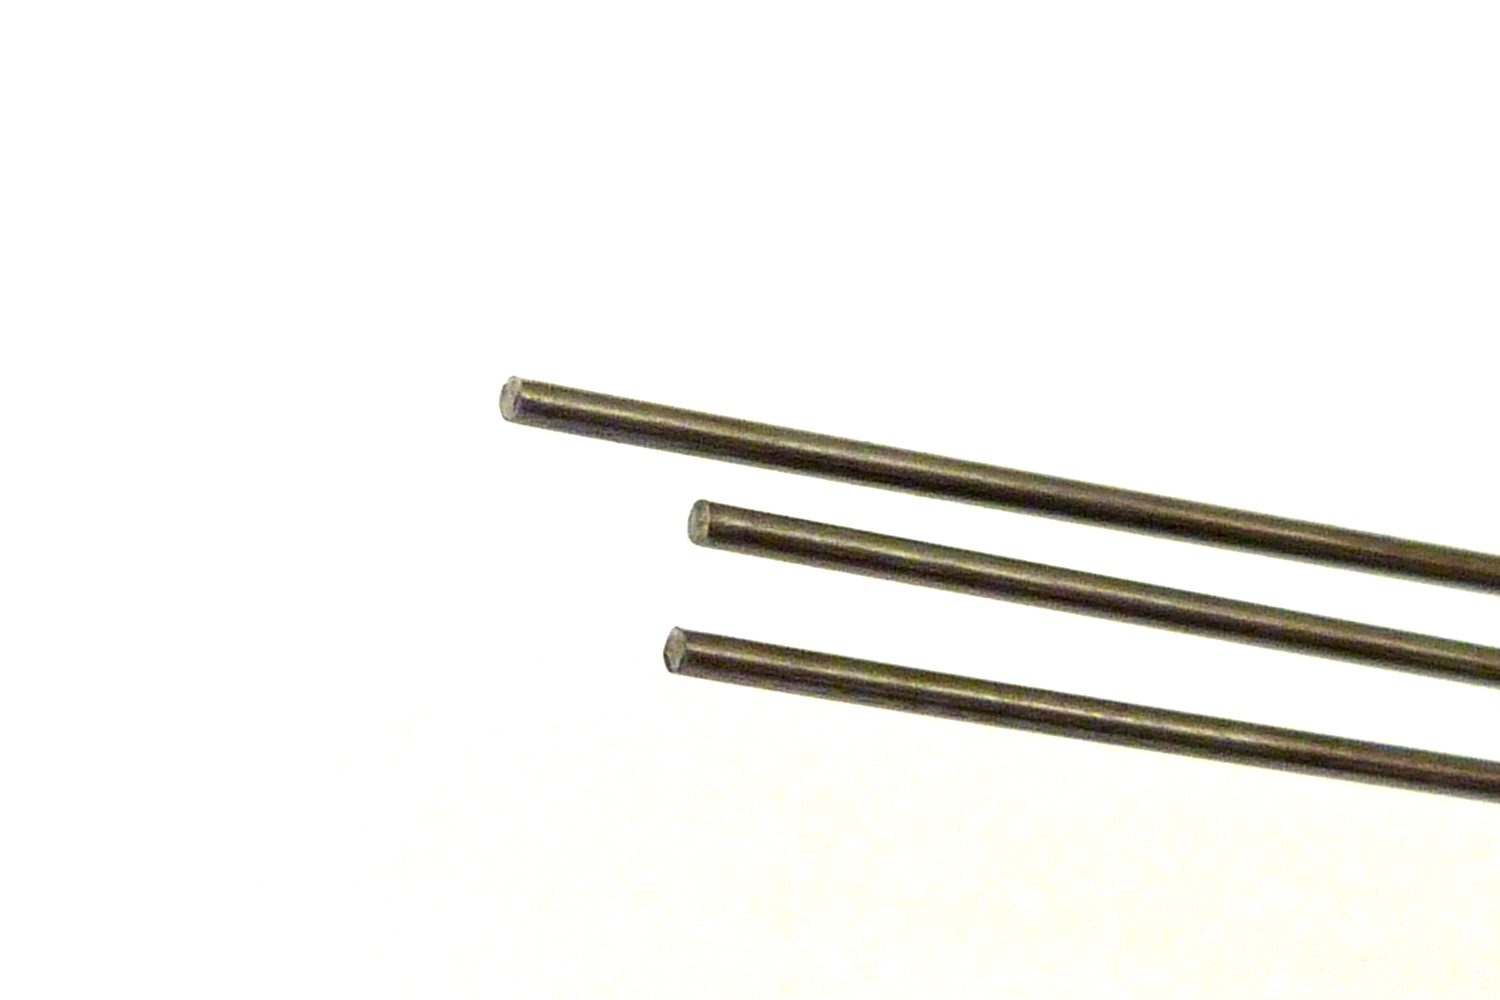 22SWG 0.71mm Piano Wire - Materials - Piano and SS Wire